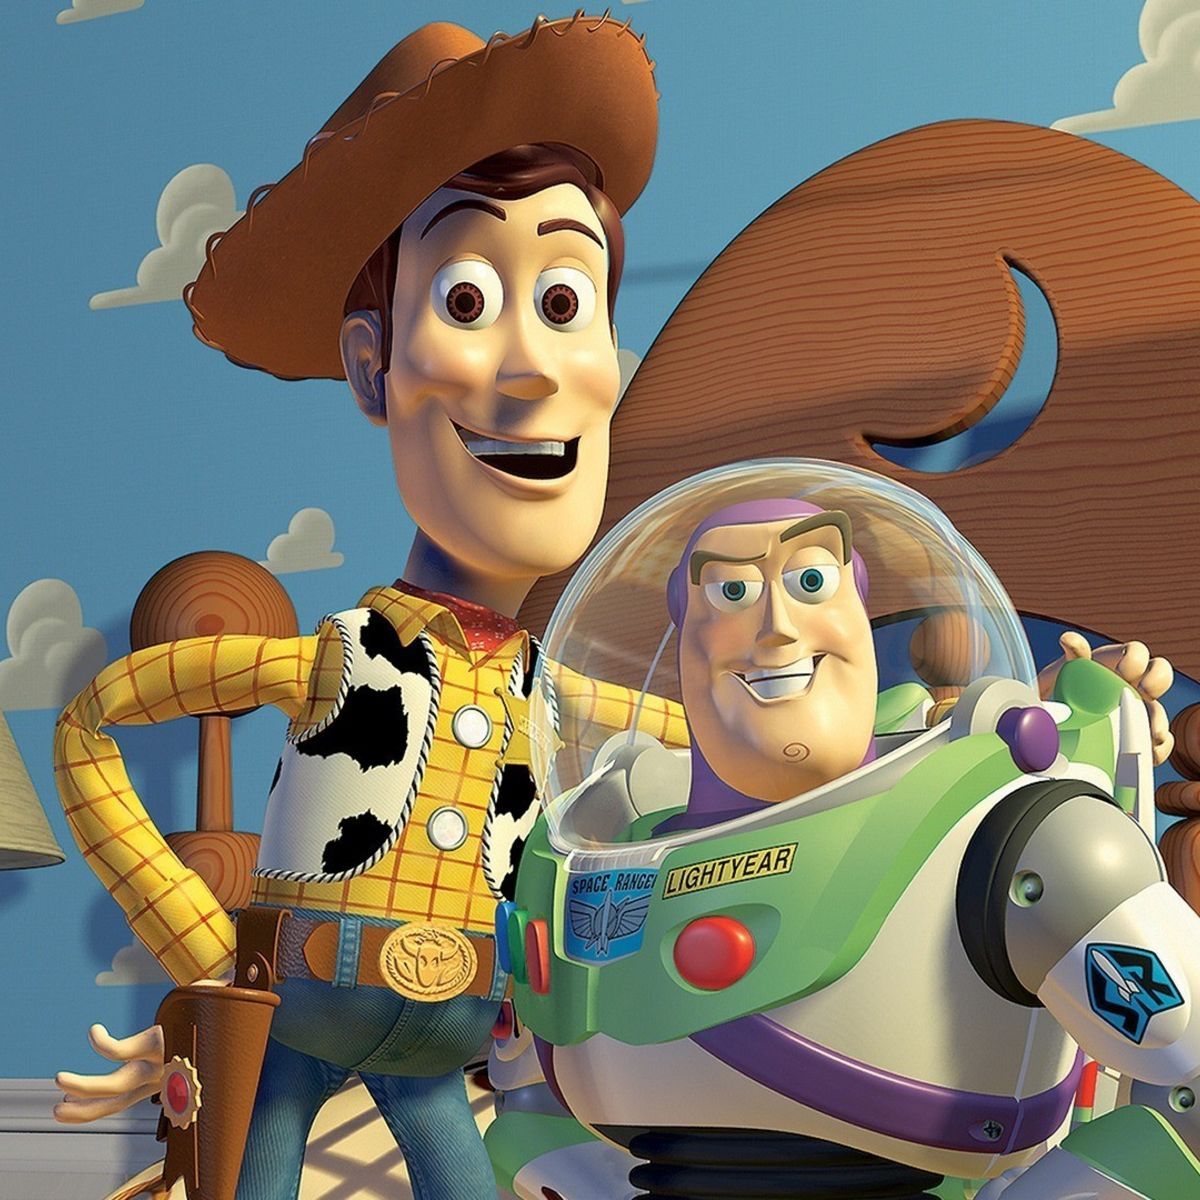 gere-this-one-little-toy-story-easter-egg-proves-once-and-for-all-how-clever-pixar-really-is.jpeg